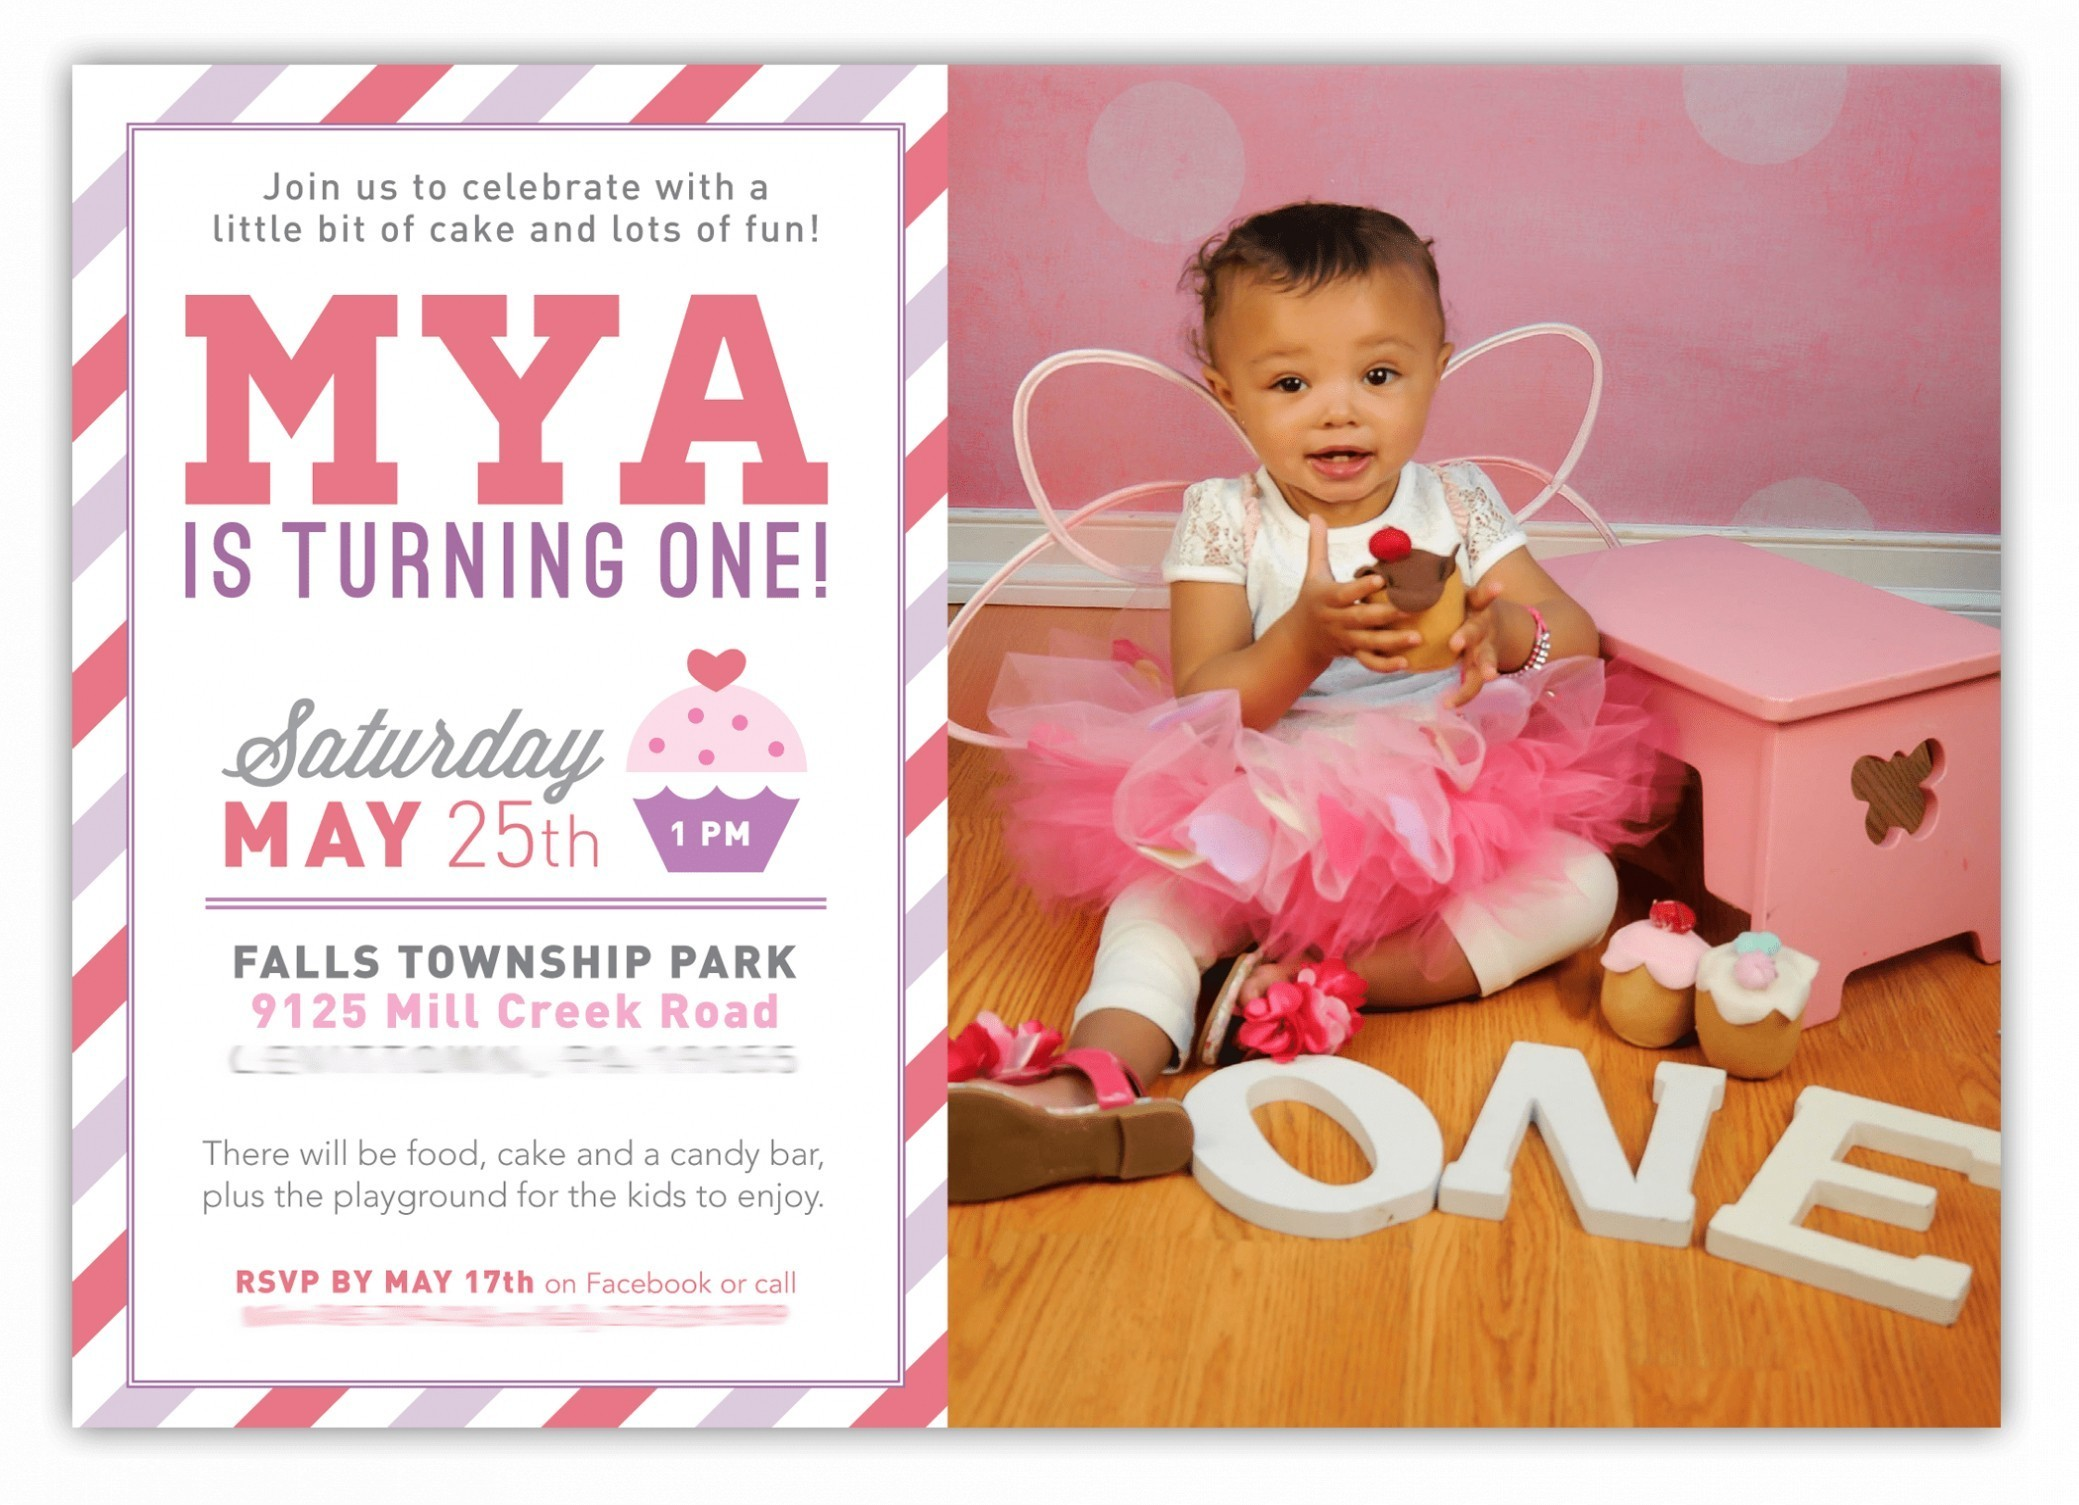 first birthday invitation letter ; sample-invitation-letter-for-first-birthday-new-sample-invitation-letter-for-1st-birthday-save-sample-invitation-of-sample-invitation-letter-for-first-birthday